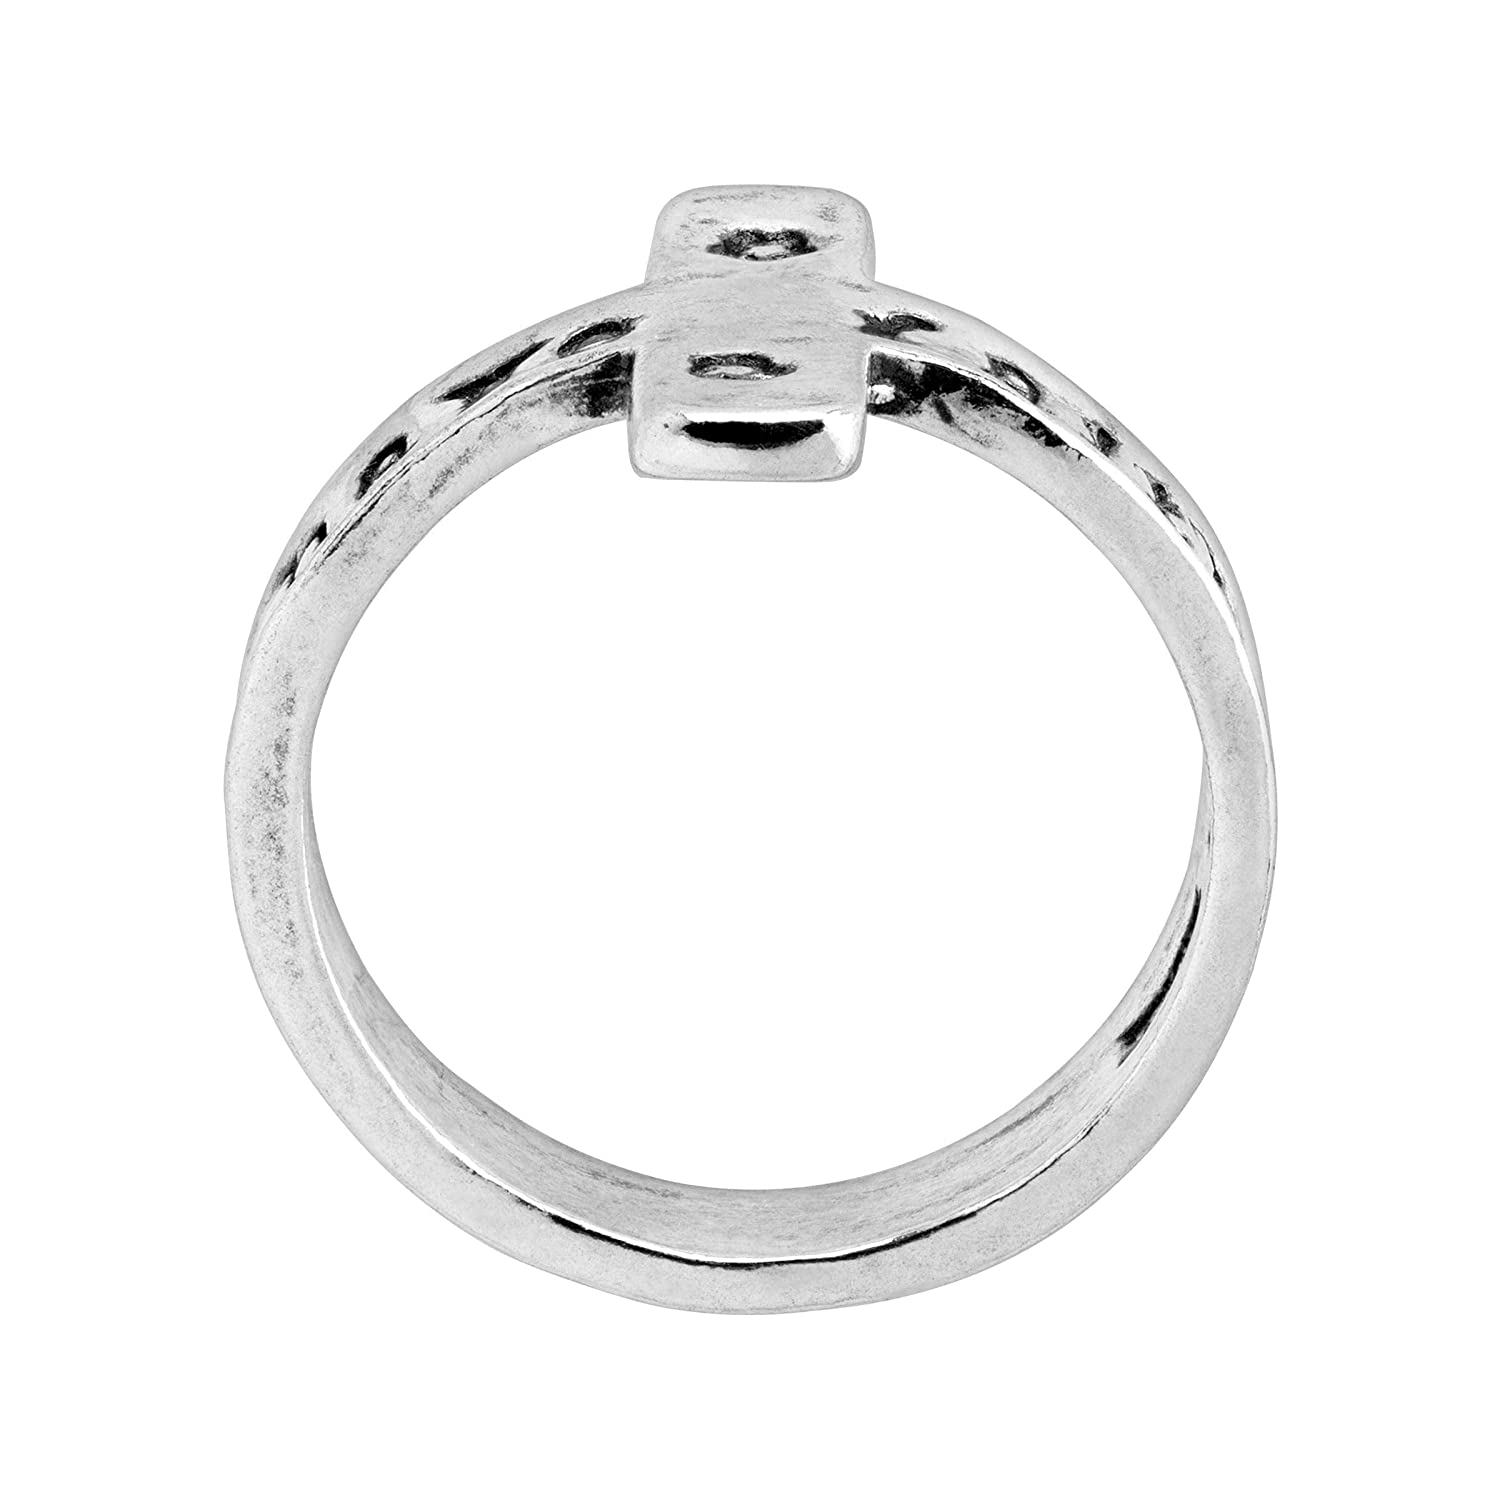 Silpada Have Faith Engraved Cross Ring in Sterling Silver